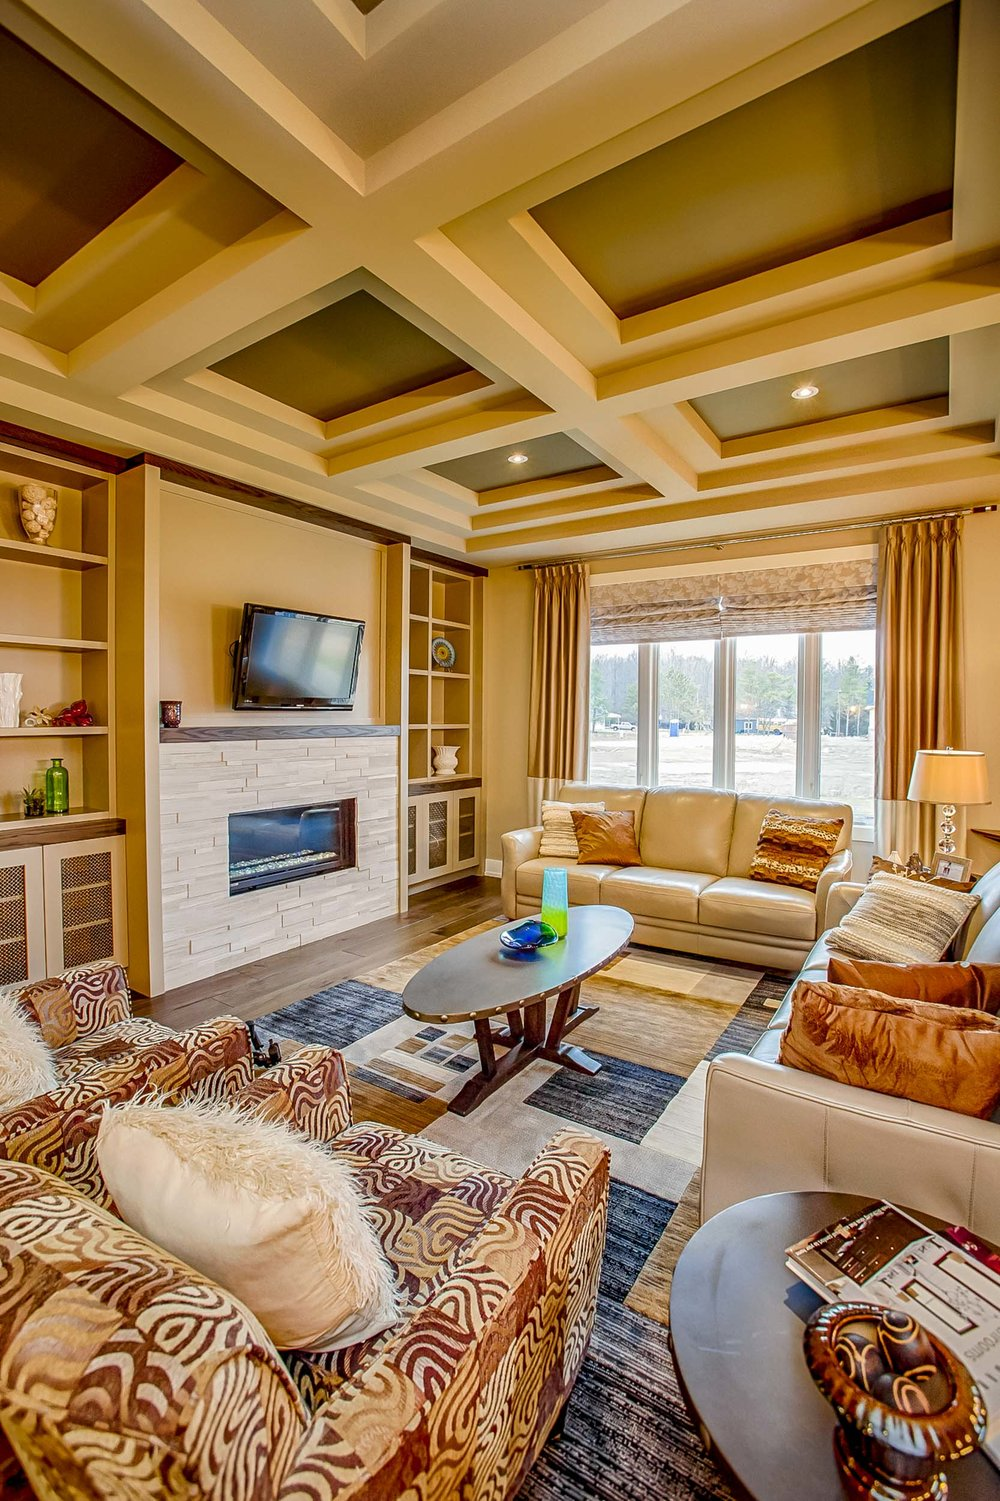 THOSE CEILINGS!